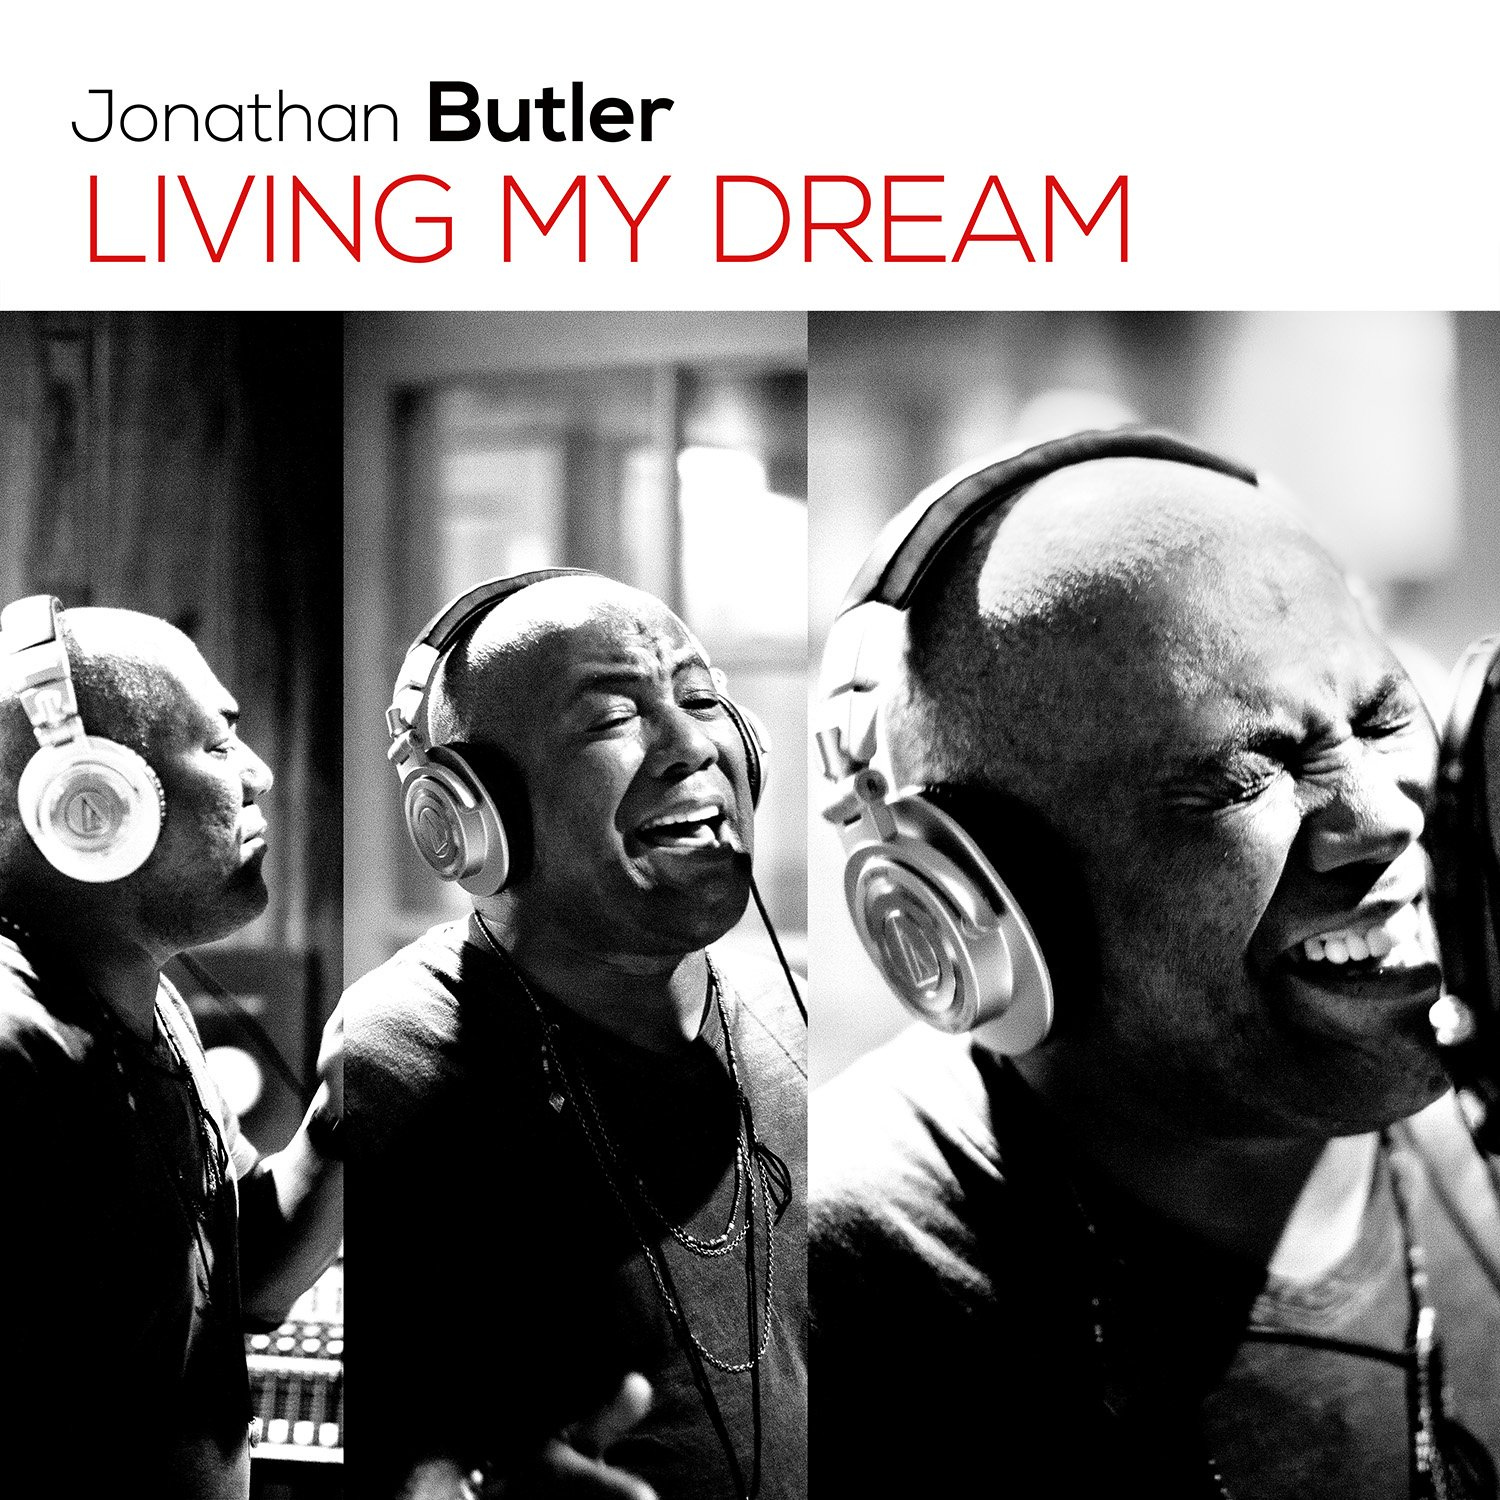 Jonathan Butler  Living My Dream  Smooth Jazz Vibes. Two Tone Living Room Furniture. Living Room Feature Wall Ideas. Sheer Curtains For Living Room. Wooden Furniture For Living Room Designs. Tan And Red Living Room Ideas. Living Room Wall Units Photos. Small Apartment Living Rooms. Best Living Room Sofas